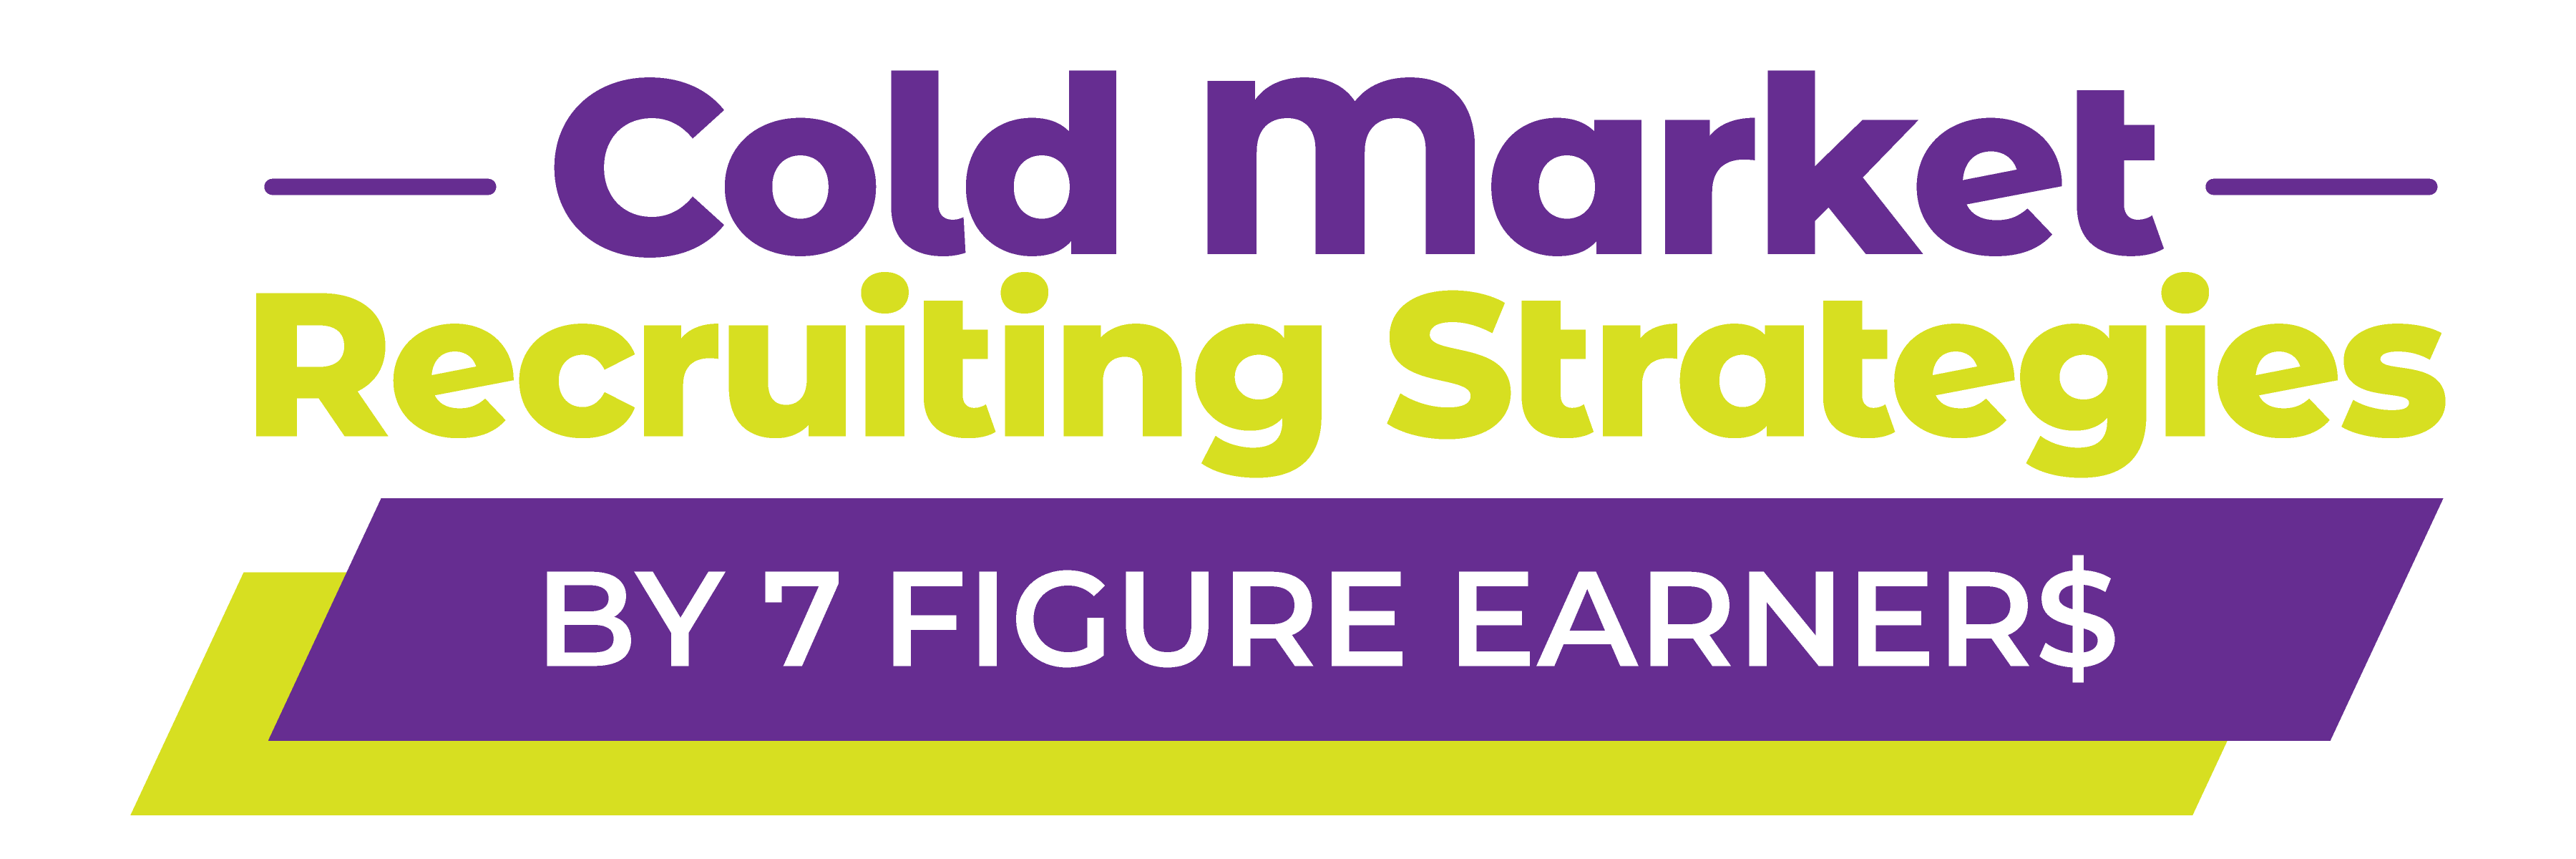 Cold Market Recruiting Strategies by 7 Figure Earners